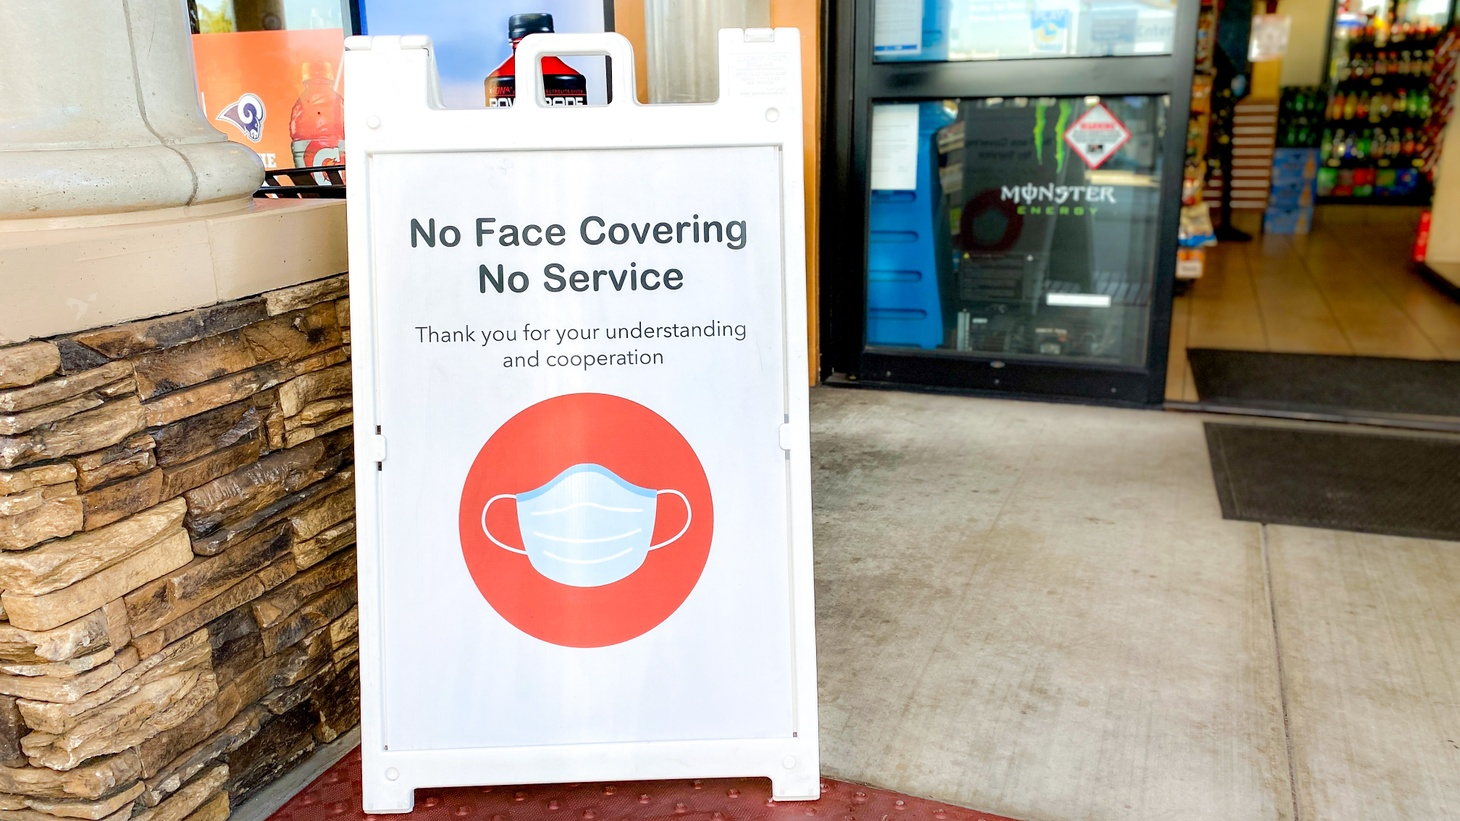 """A sign outside a gas station convenience store says, """"No face covering, no service. Thank you for your understanding and cooperation."""" Newport Beach, California, December 6, 2020."""